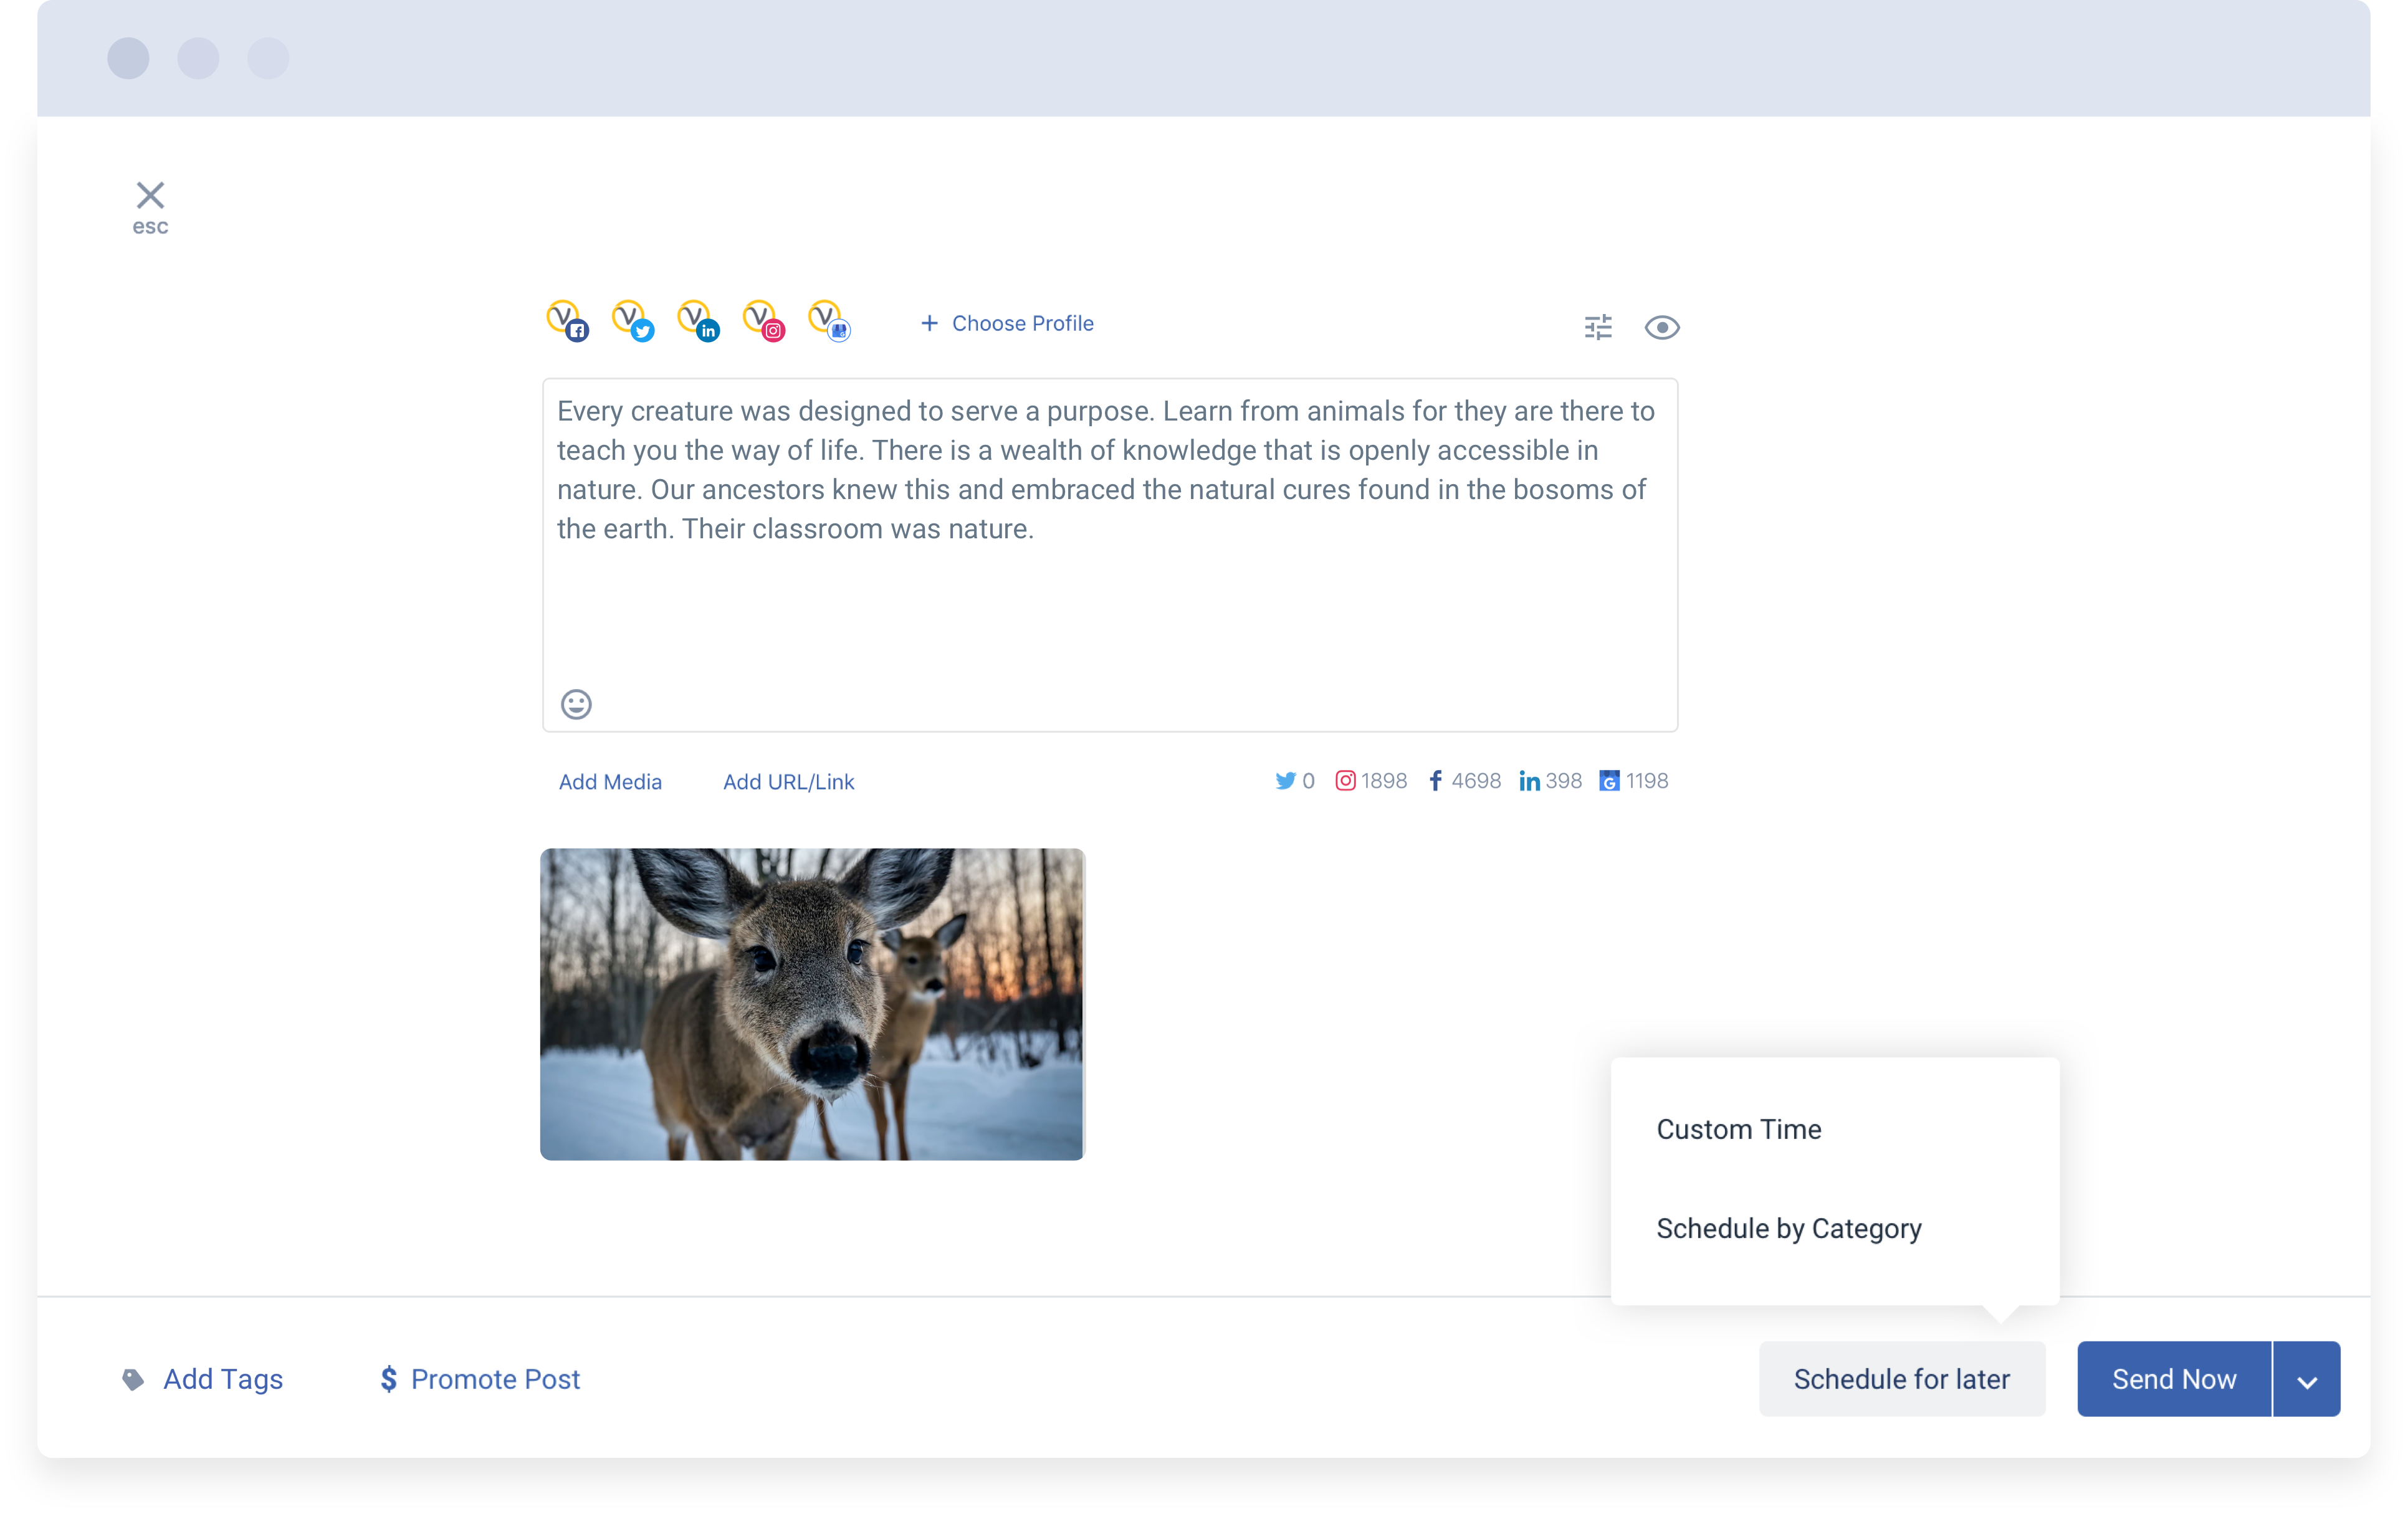 Compose : Schedule and publish your social media campaigns across major social networks. Using CSV upload, schedule hundreds of posts and images in a single click and save hours worth efforts.